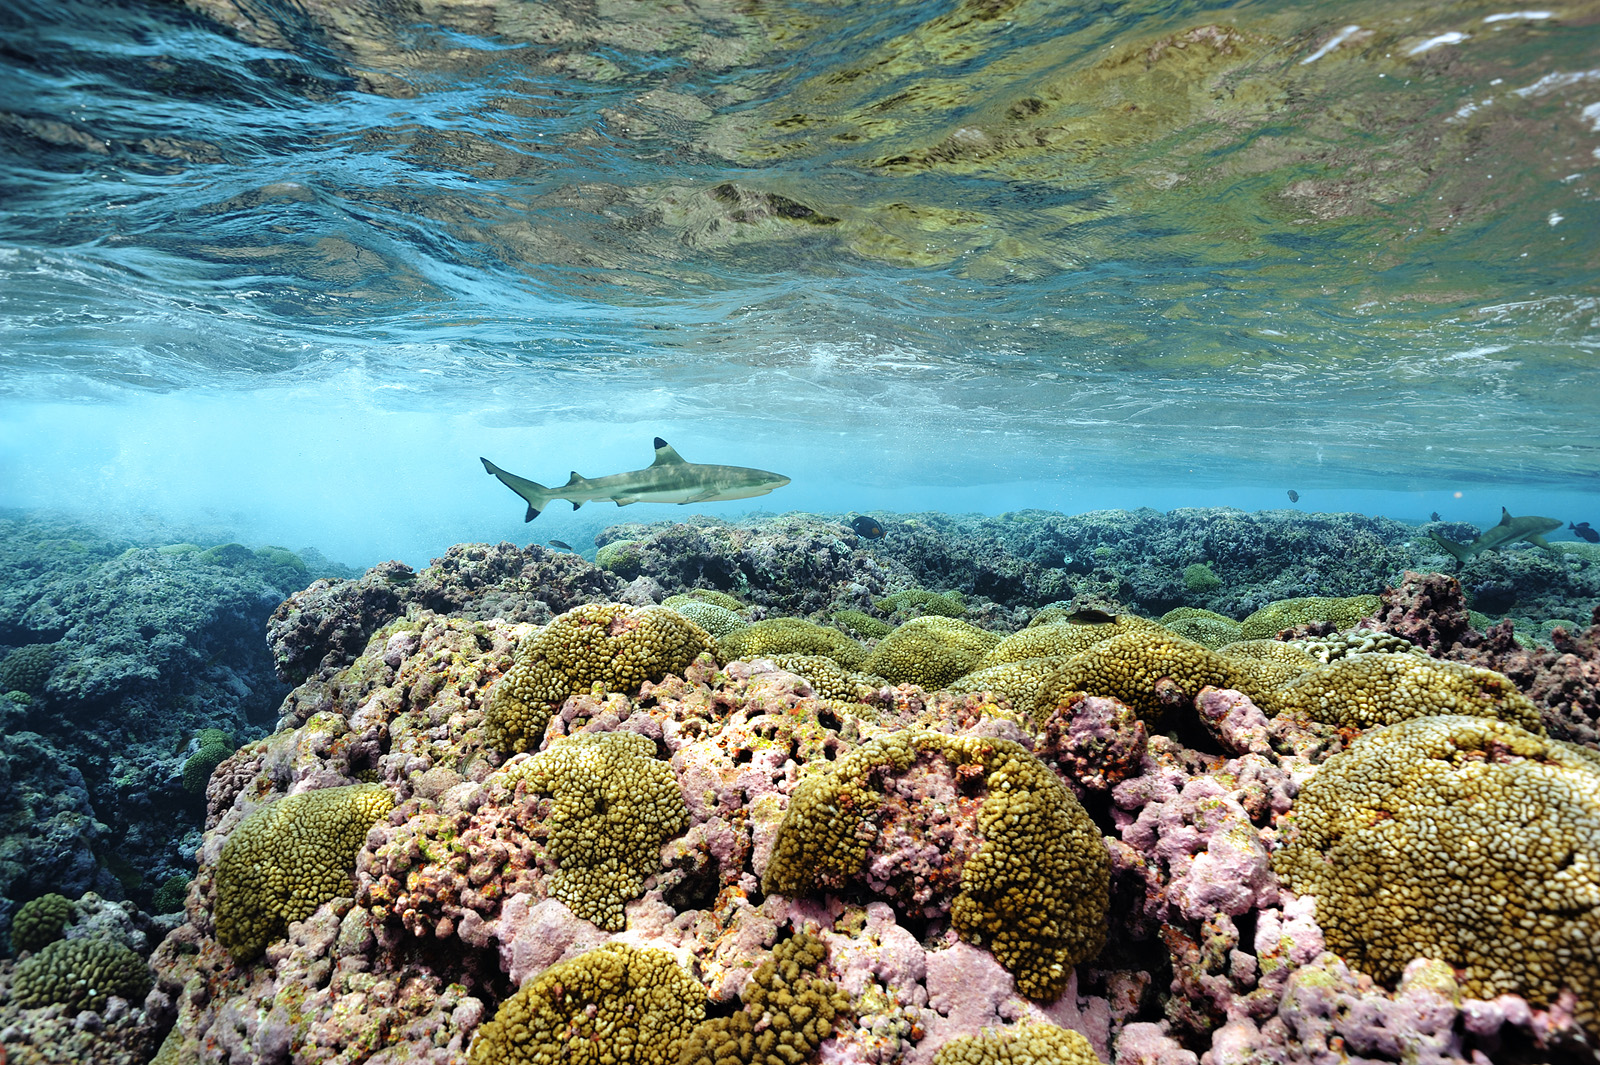 Surf Zone - Blacktip Reef Shark, Millennium Atoll, 2009